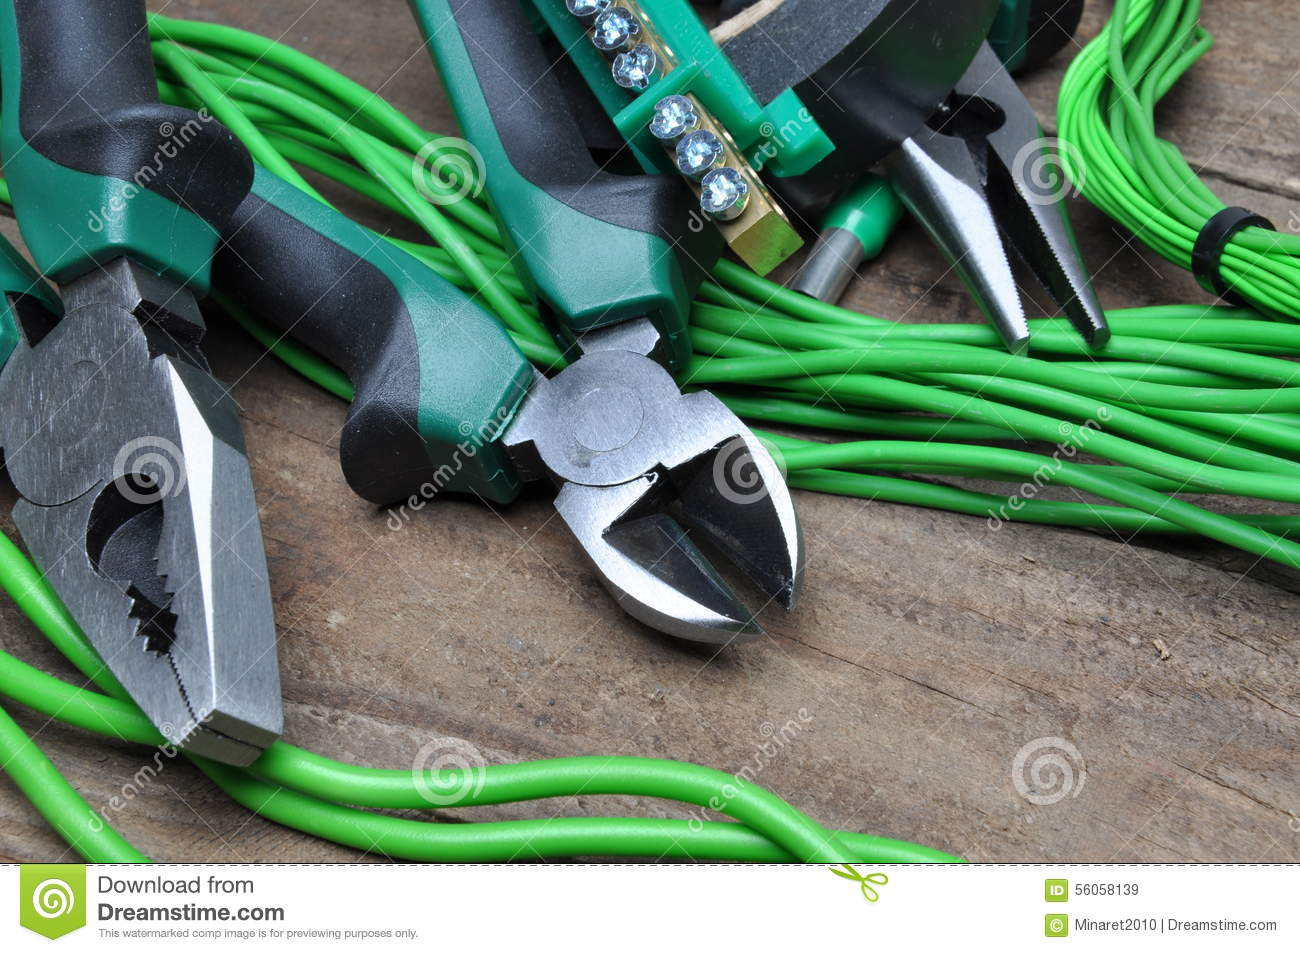 Pliers tools and component for electrical installation